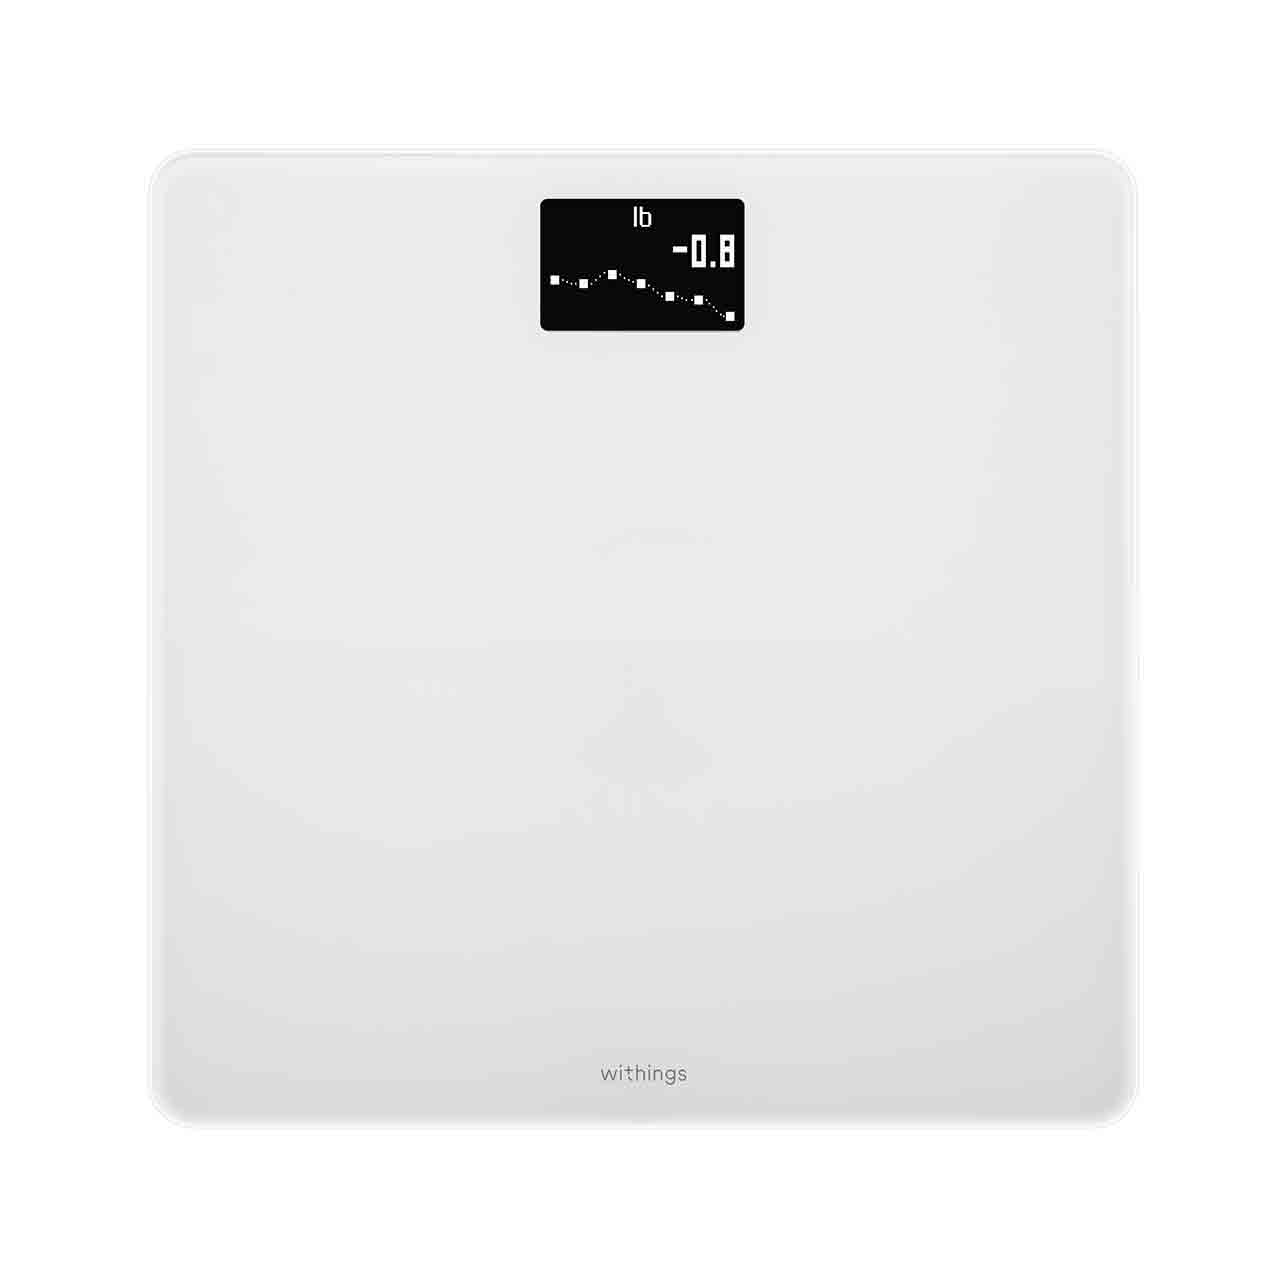 Withings Body (Nokia), White - Weight & BMI Wi-Fi Scale - Wi-Fi sync, Multi-user, Pregnancy mode - Withings Official Store